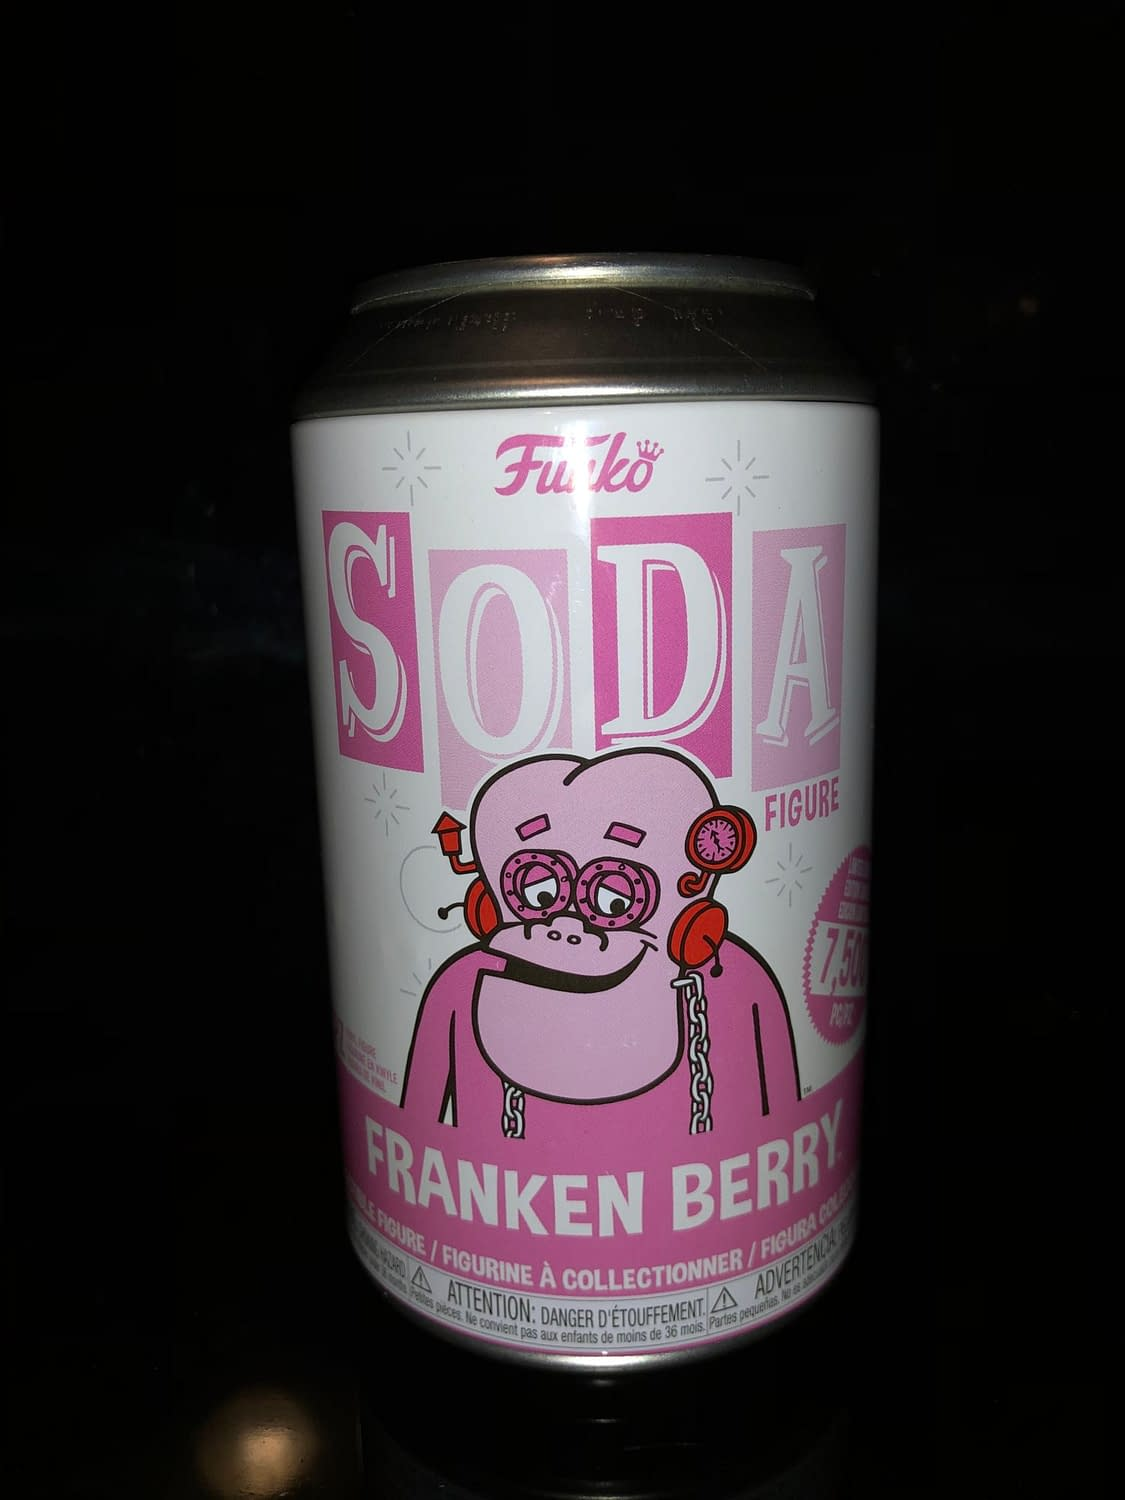 Funko Soda Brings Limited Edition Back to Collecting [Review]